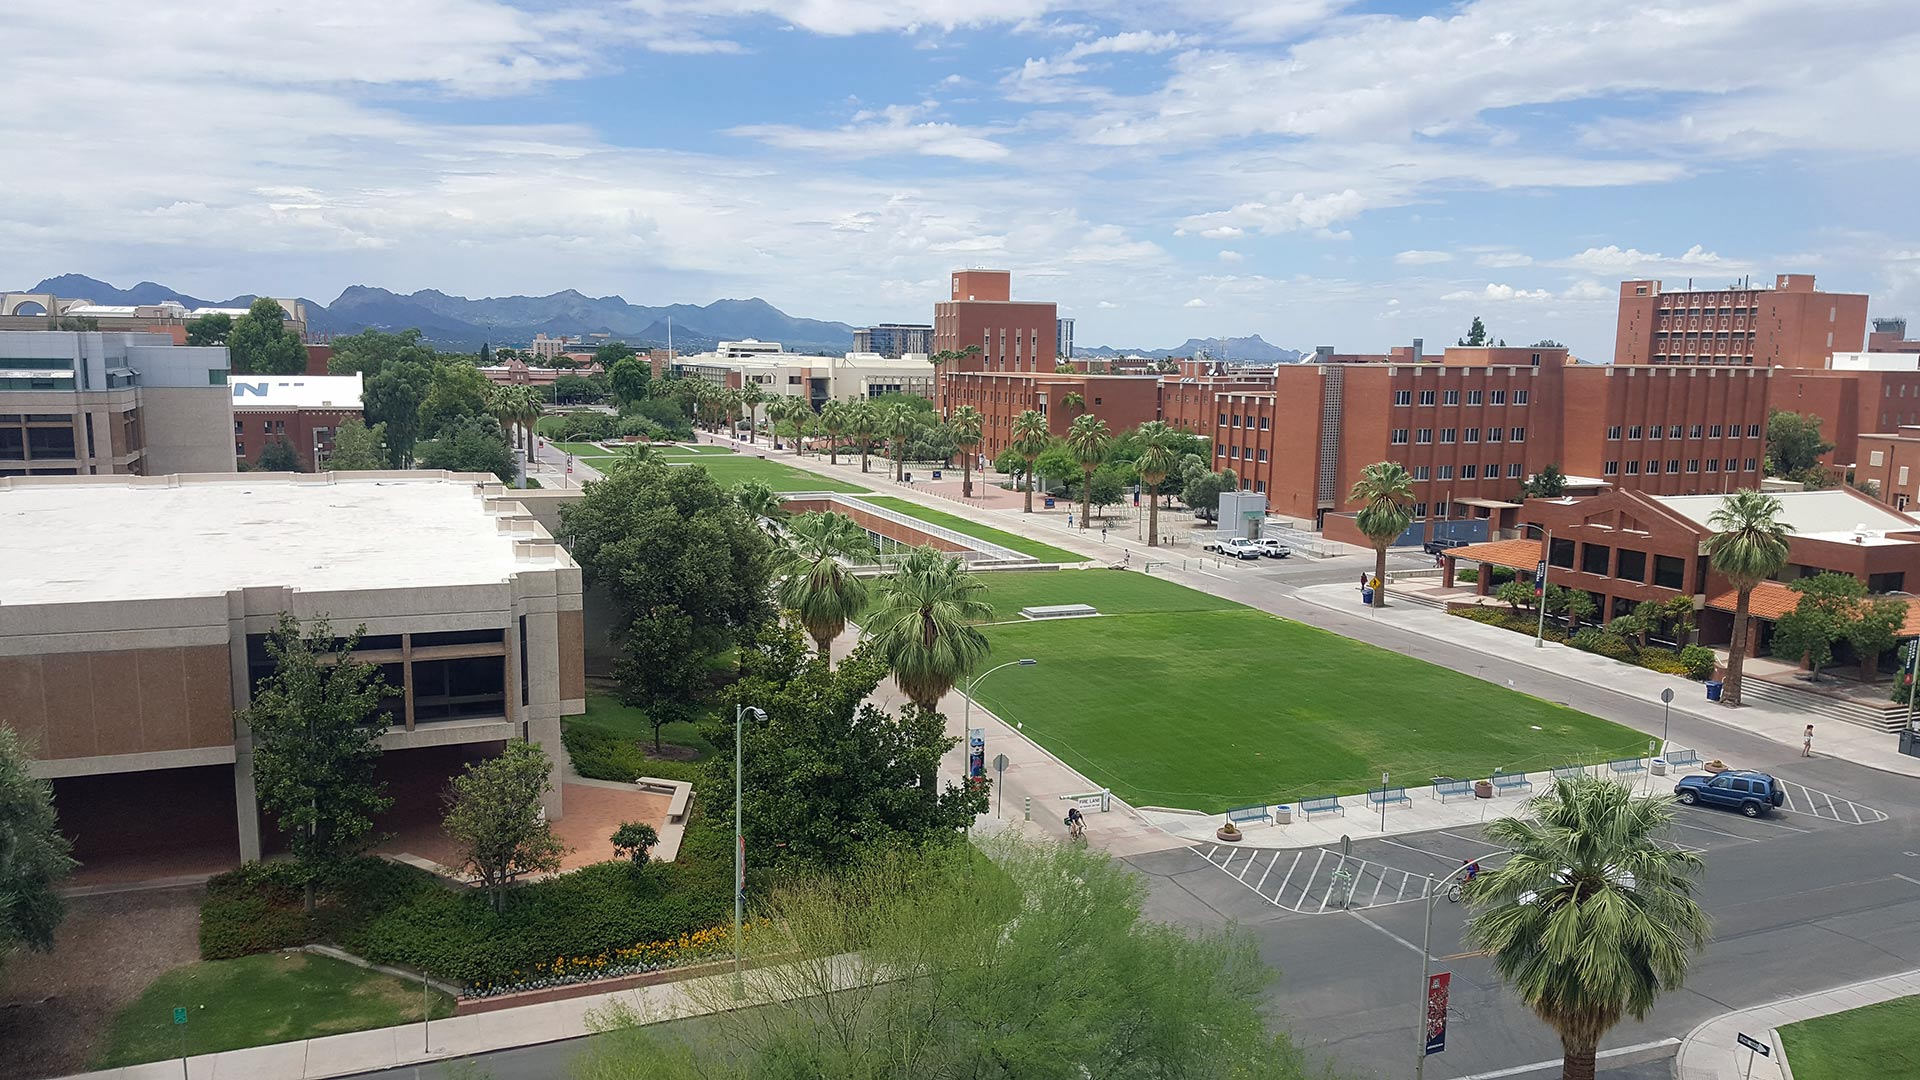 Looking down at the mall on the campus of the University of Arizona.